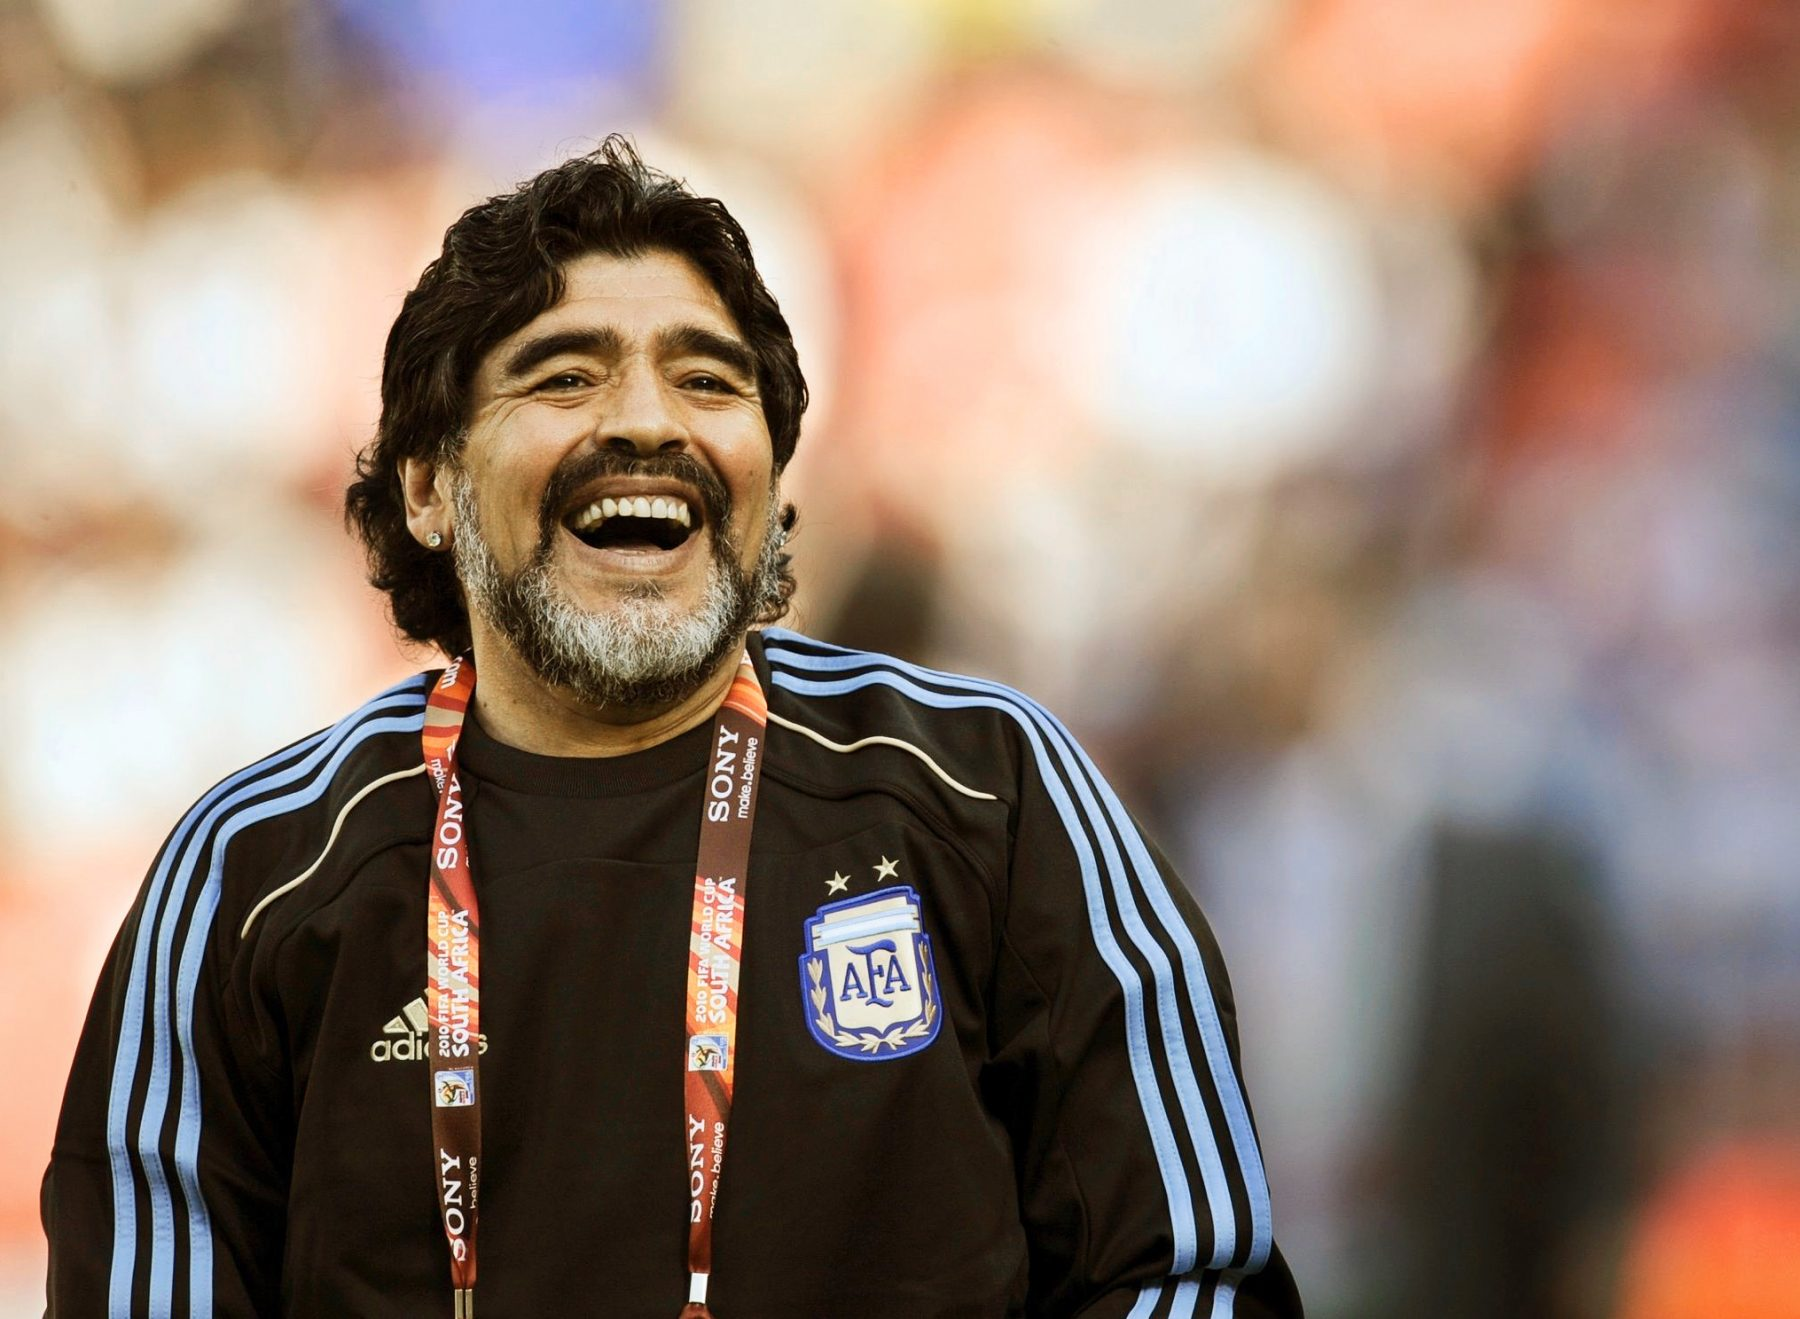 Diego Maradona dies due to Heart Attack at 60